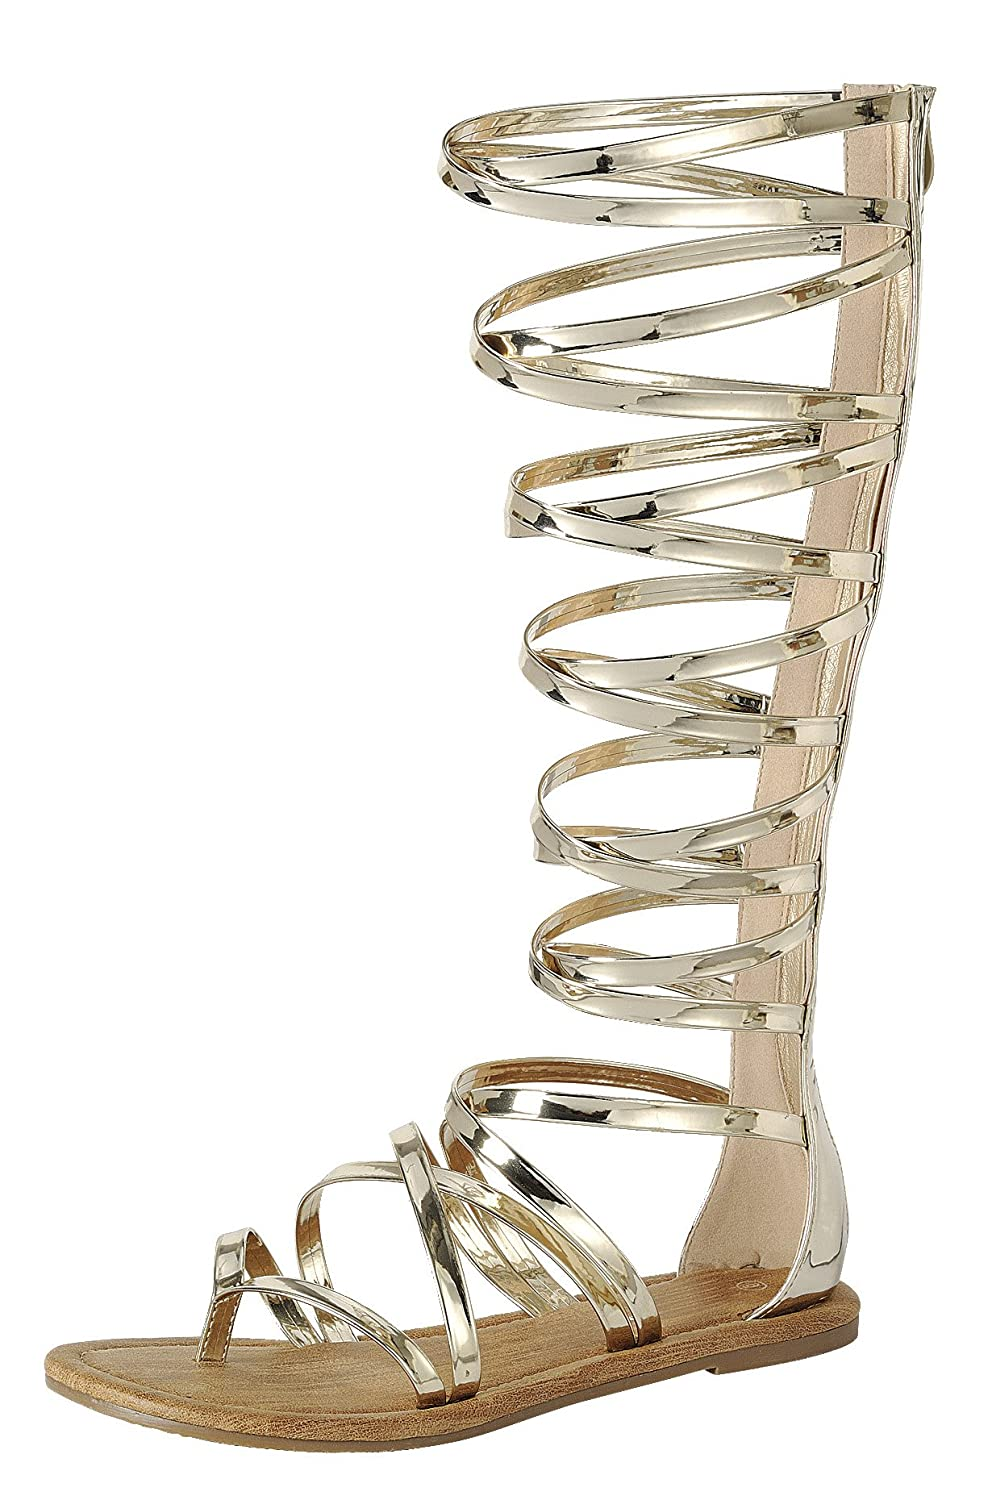 Women's Gold Gladiator Open Crisscross Strappy Knee-High Flat Sandals - DeluxeAdultCostumes.com